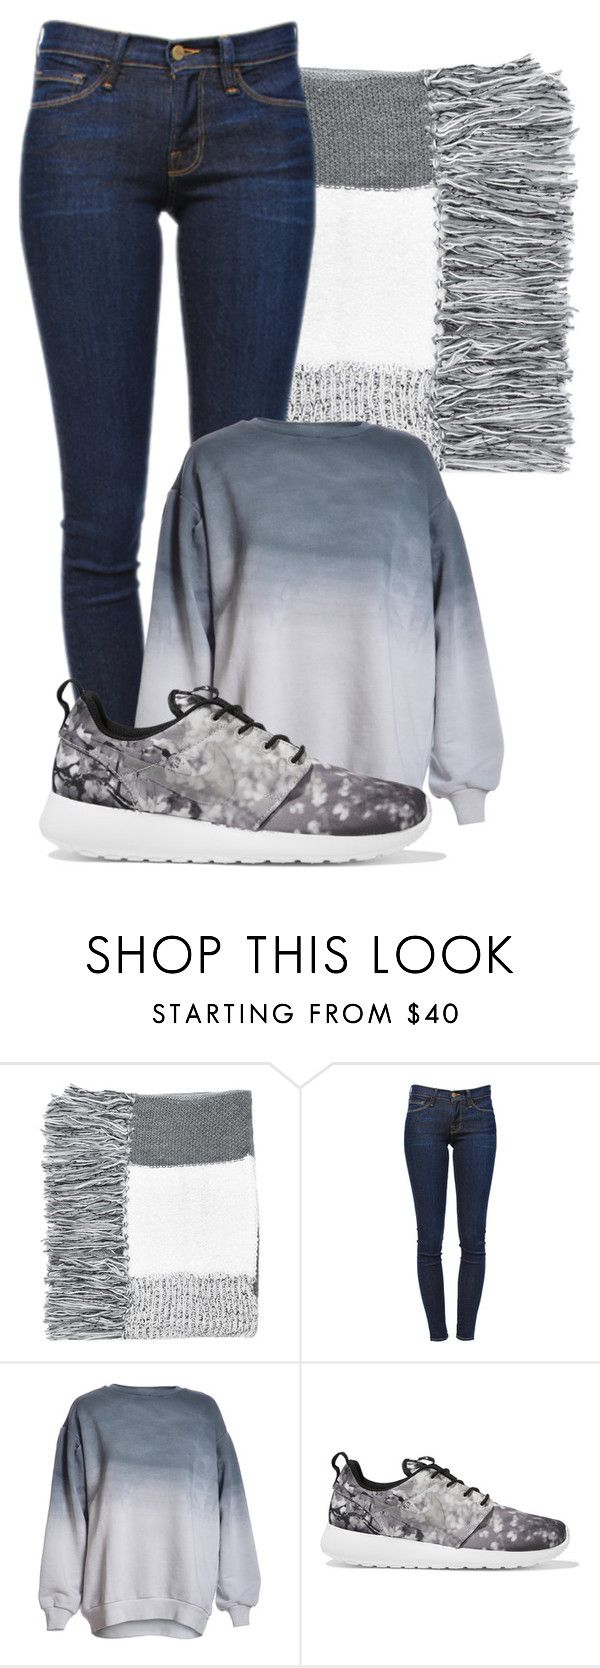 """#178"" by jesuisleclown ❤ liked on Polyvore featuring Topshop, Frame Denim, NIKE, women's clothing, women, female, woman, misses and juniors"